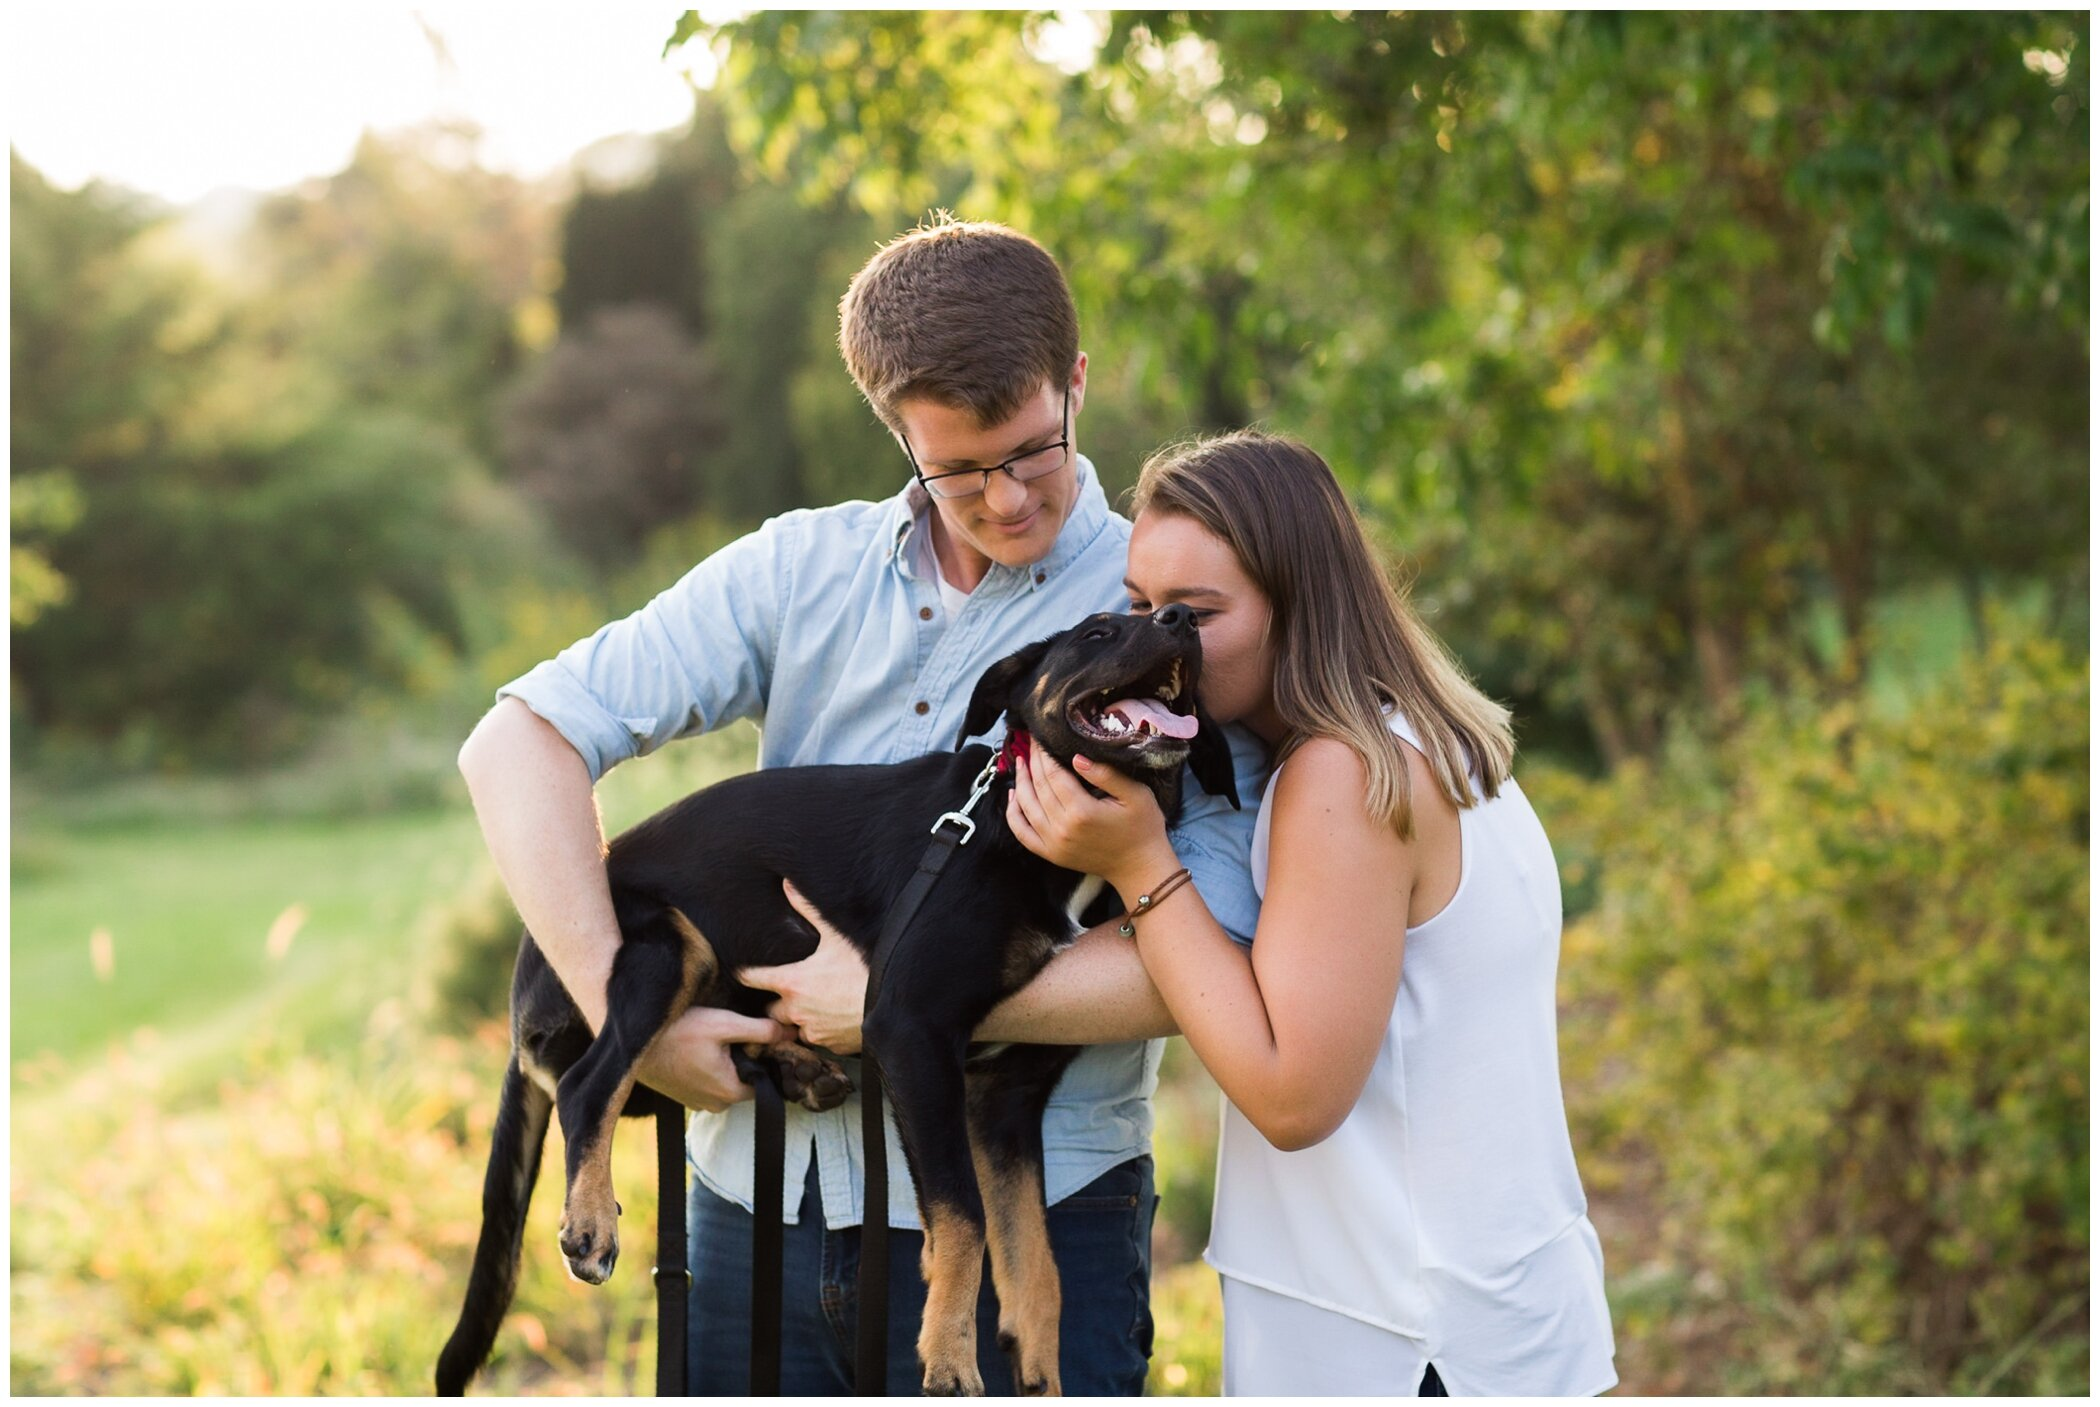 Fall family photos at Andre Viette Nursery in Fisherville VA featuring a german shepherd puppy